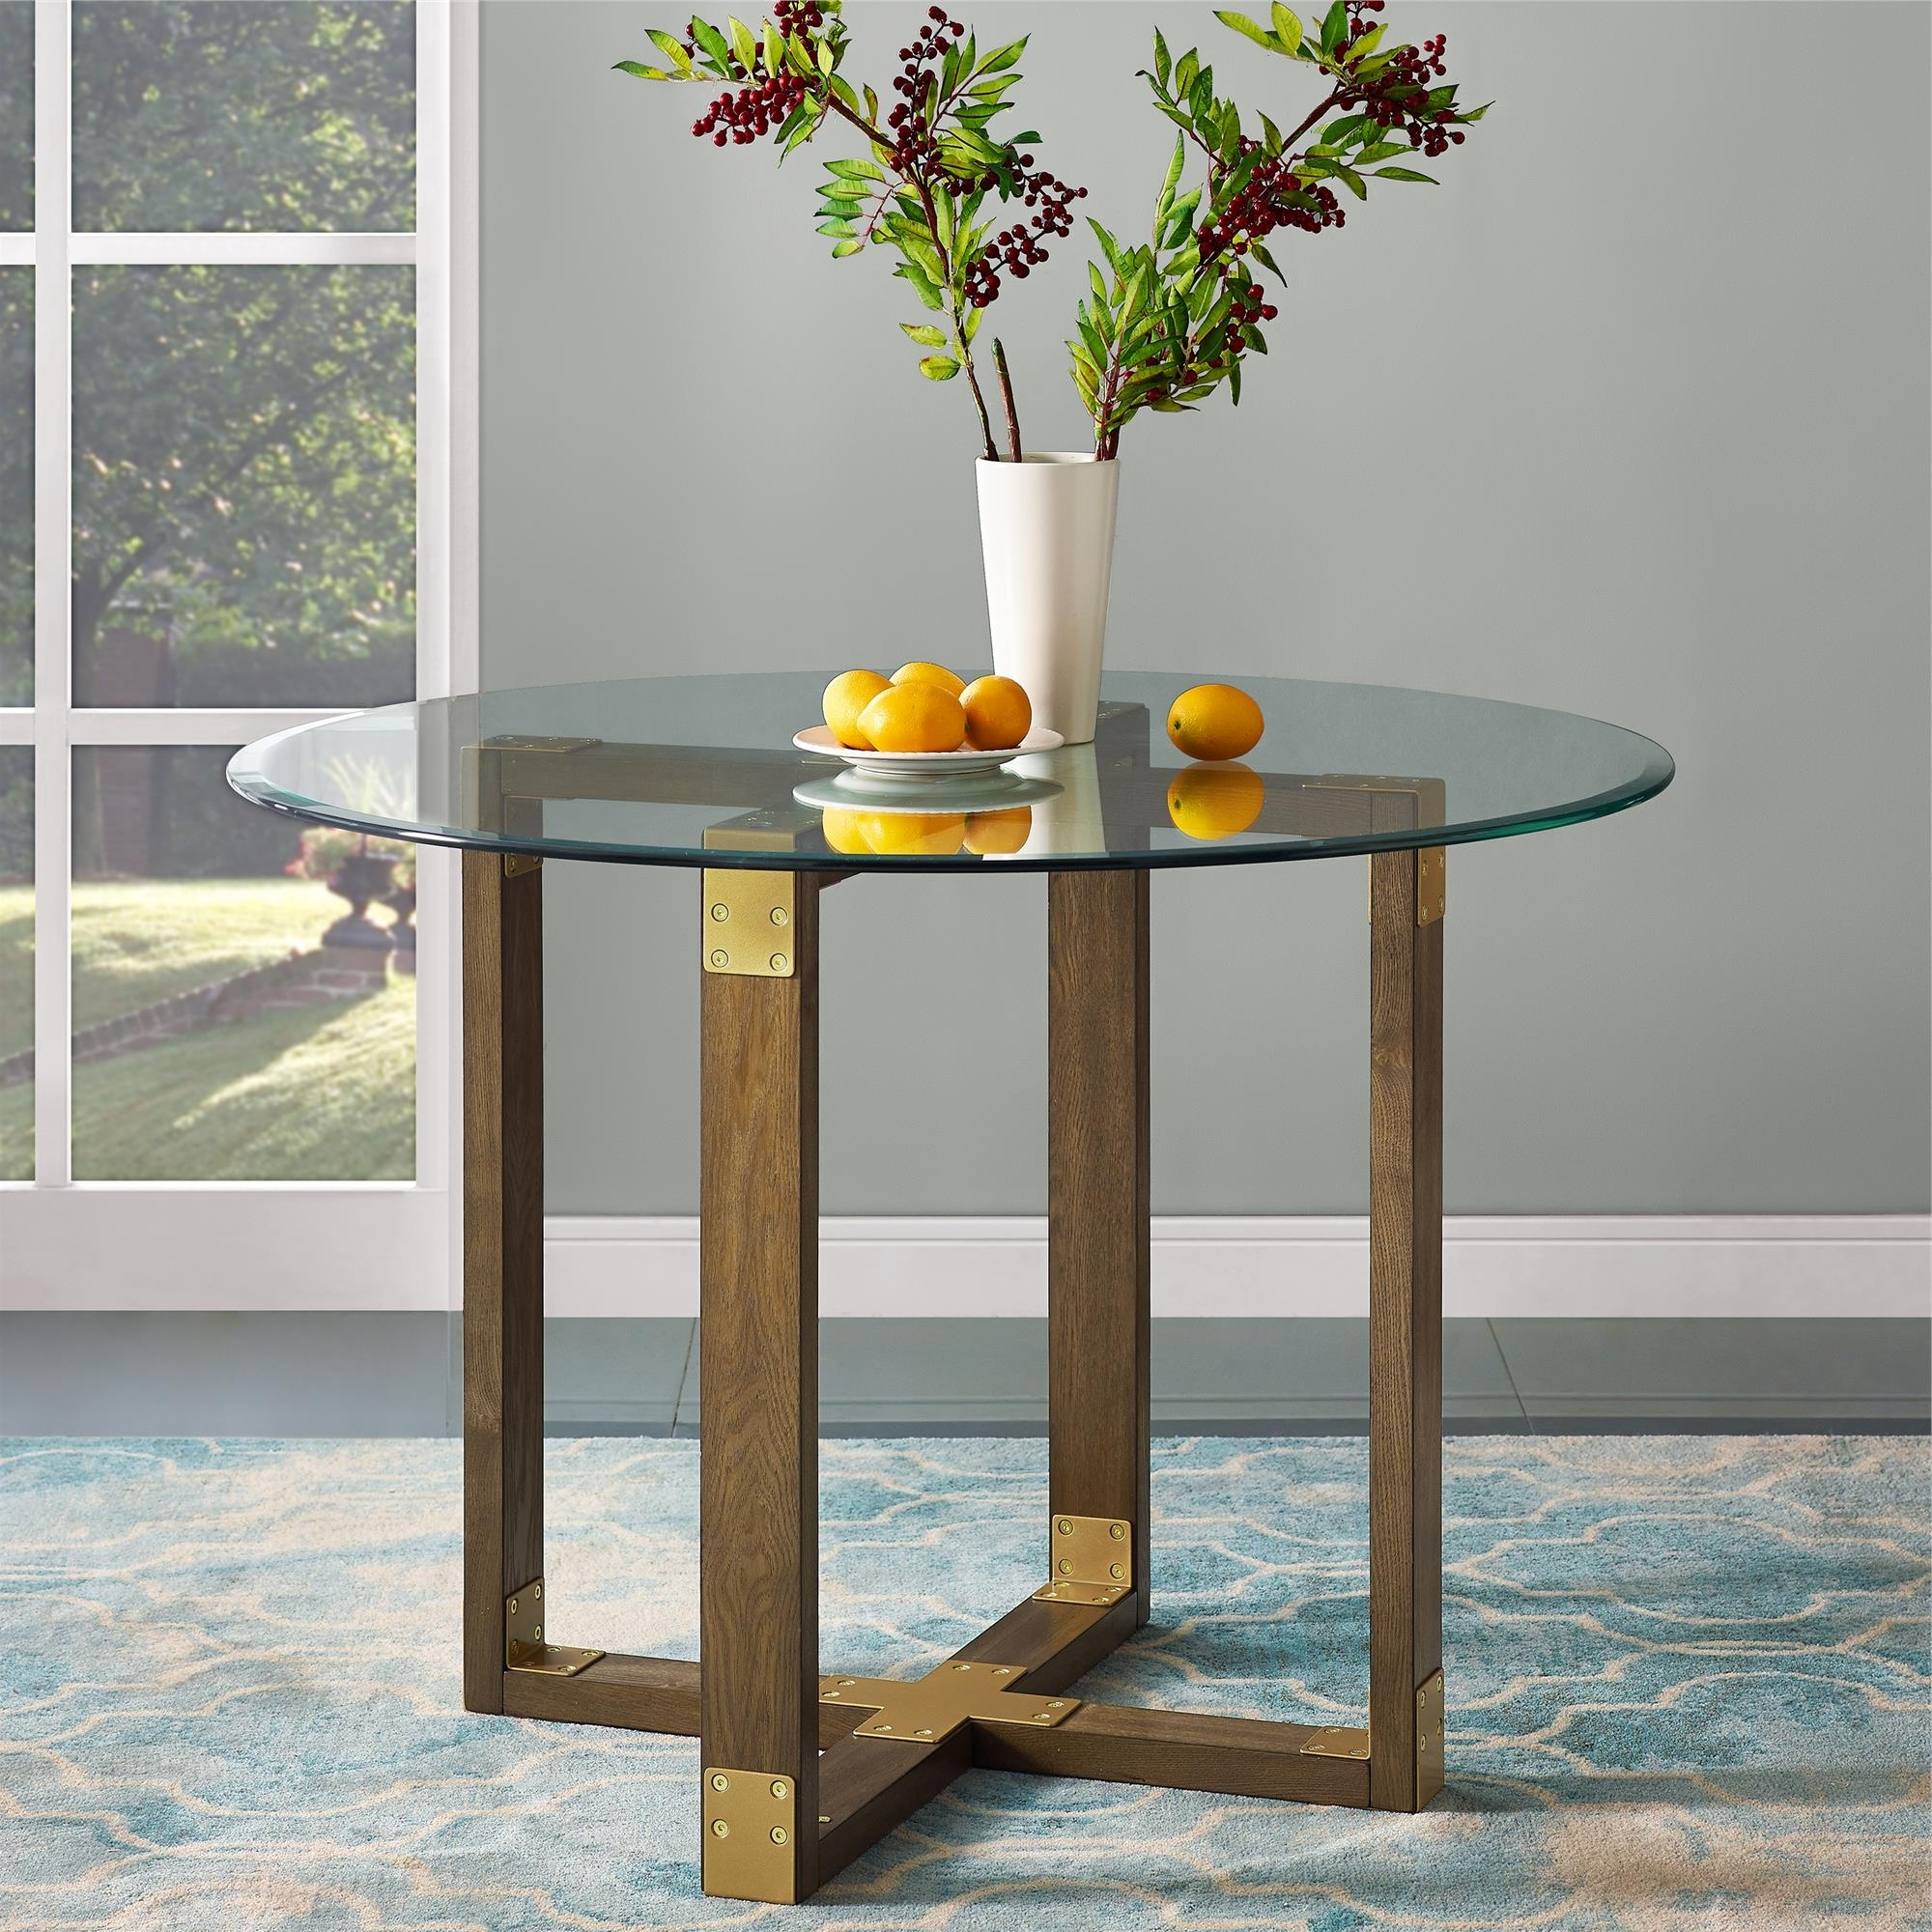 Dorel Living Bronx Glass Top Dining Table, Rustic Oak (Gallery 20 of 25)